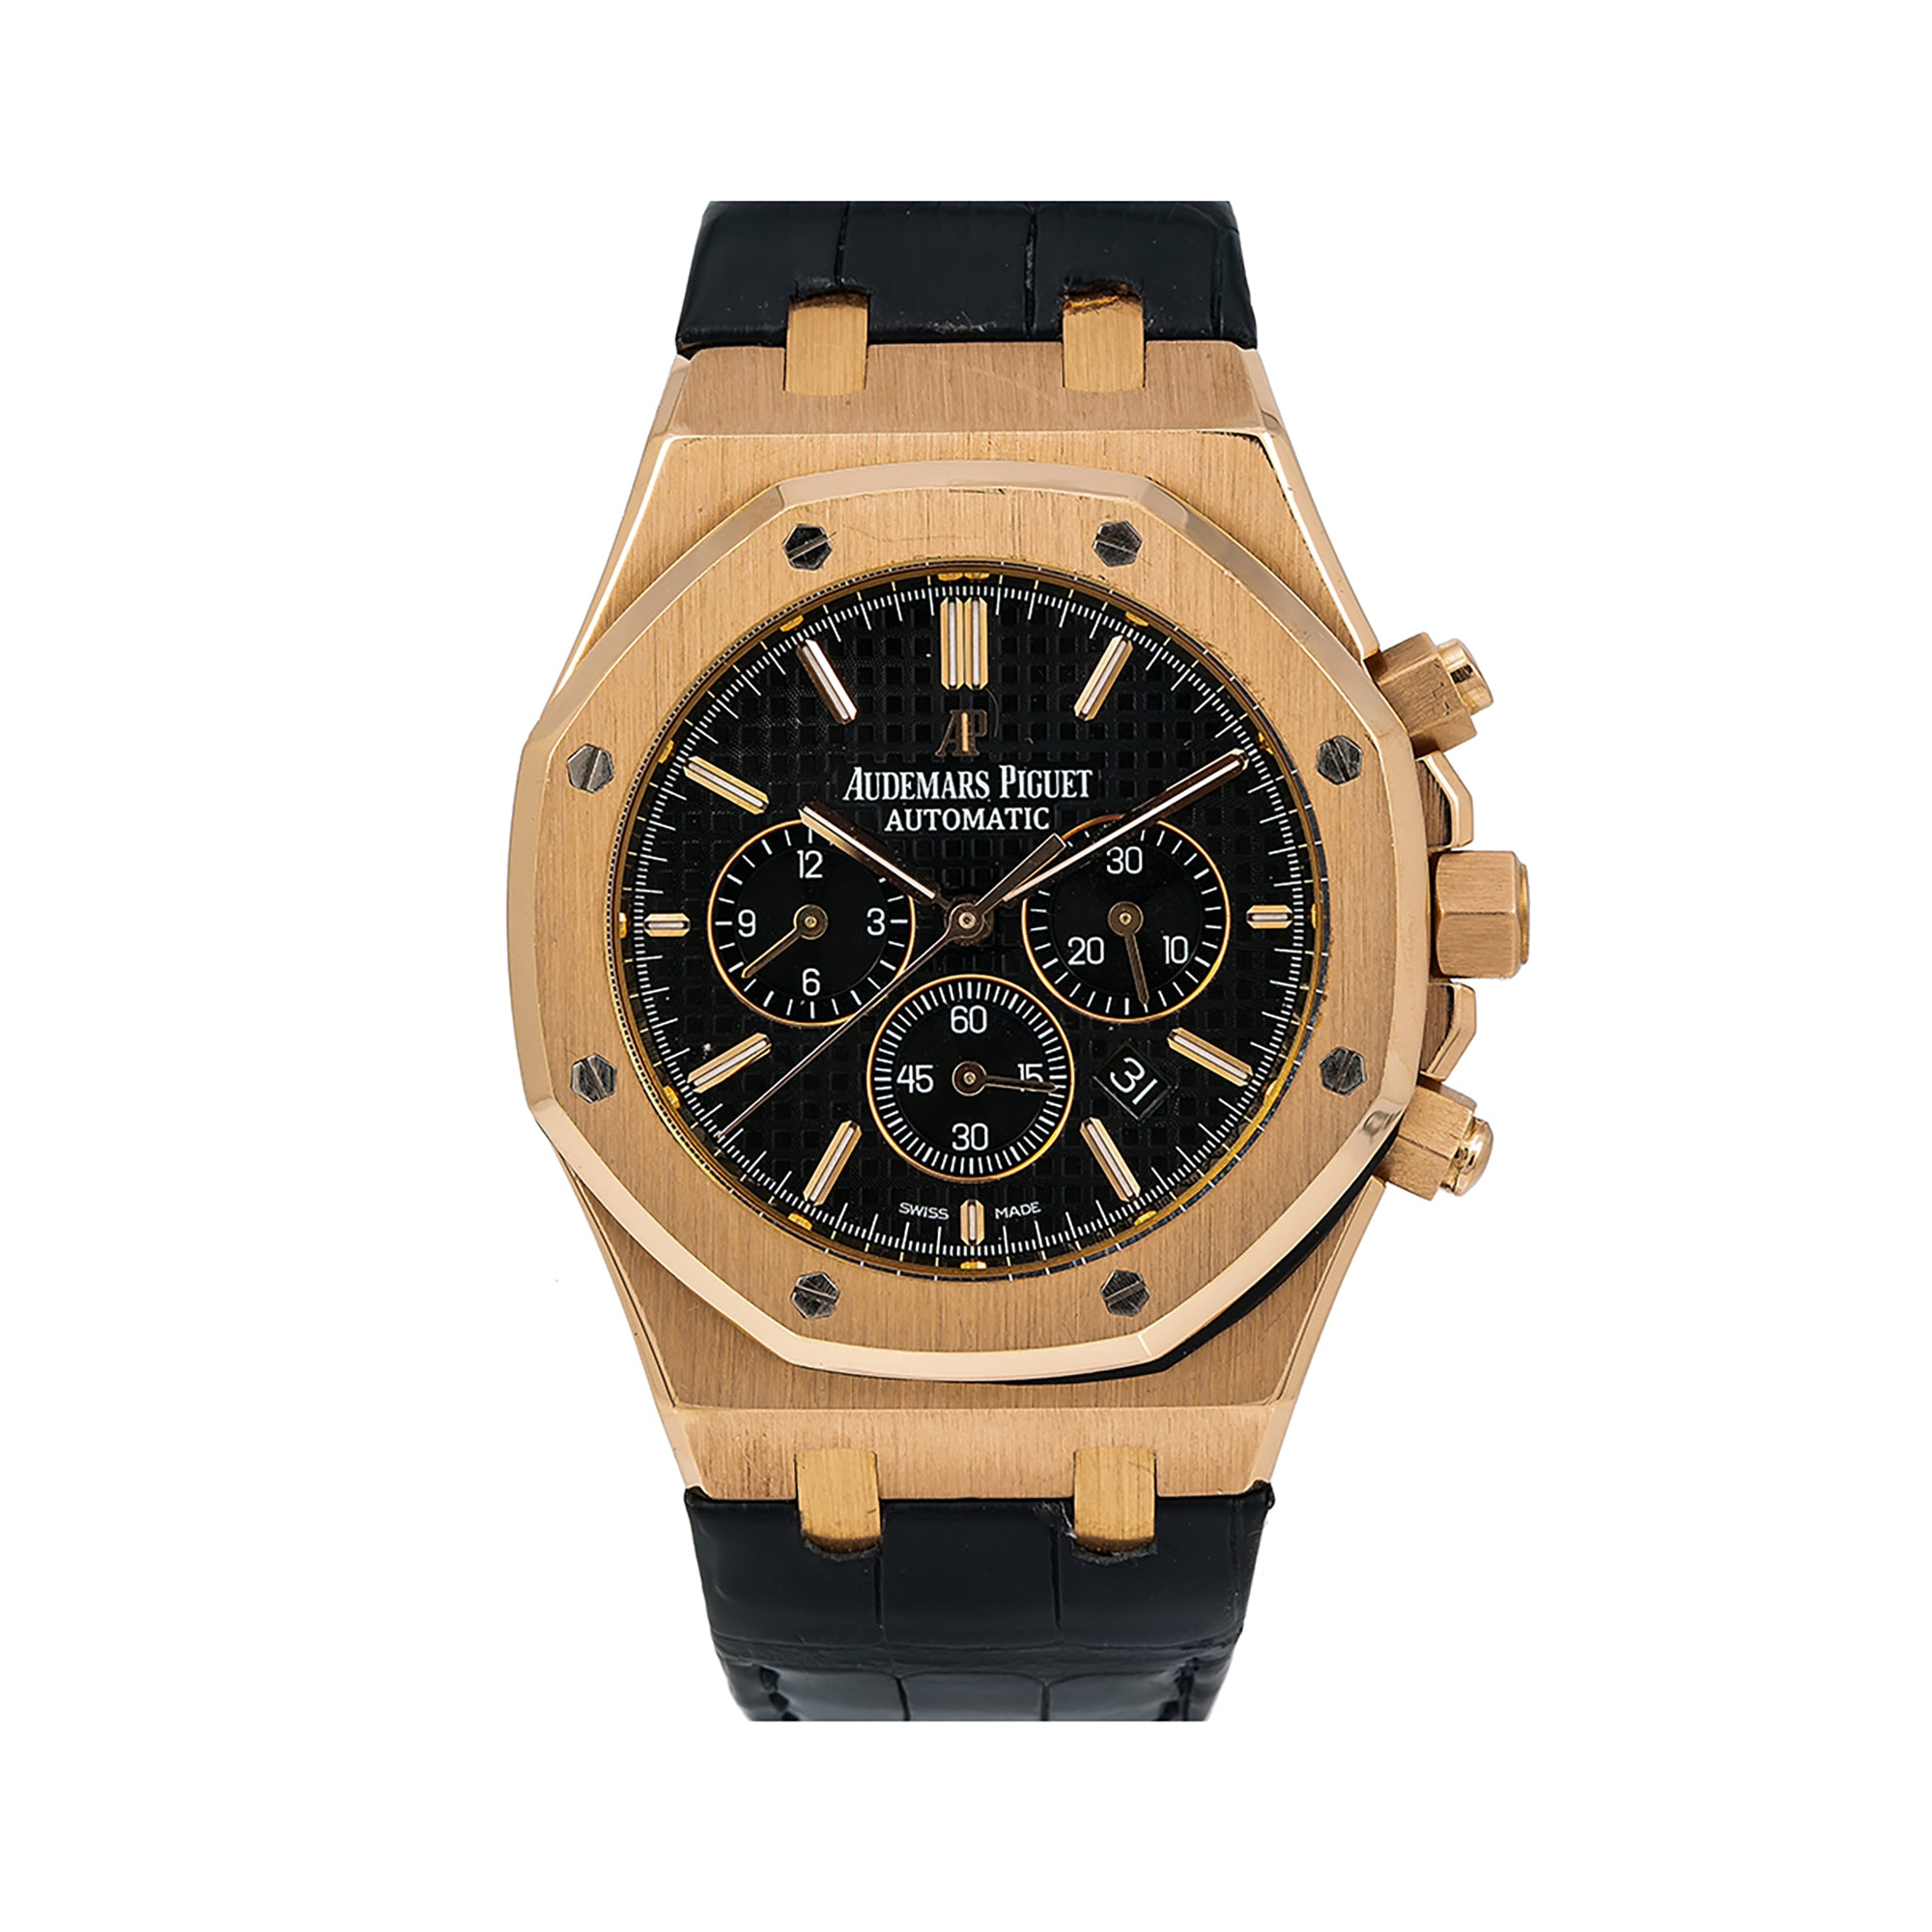 Audemars Piguet Royal Oak Chronograph 26320OR 41MM Black Dial With Leather Bracelet